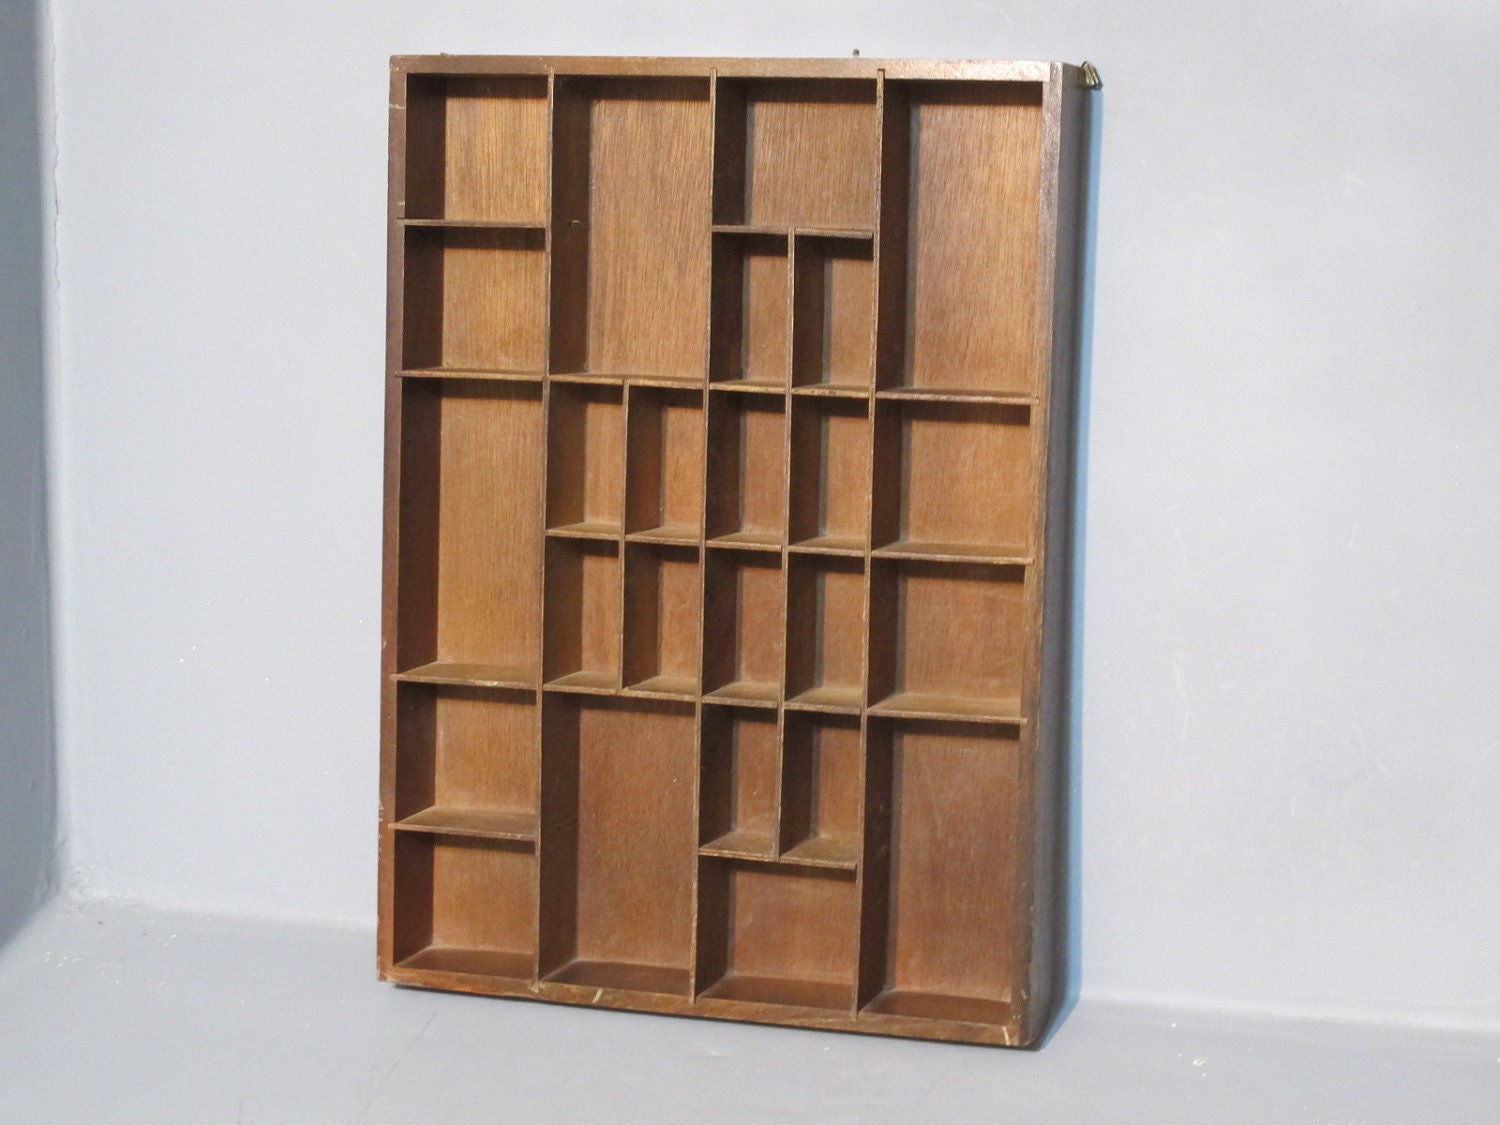 Vintage Decorative Wooden Shadow Box Shelf Jewelry Display